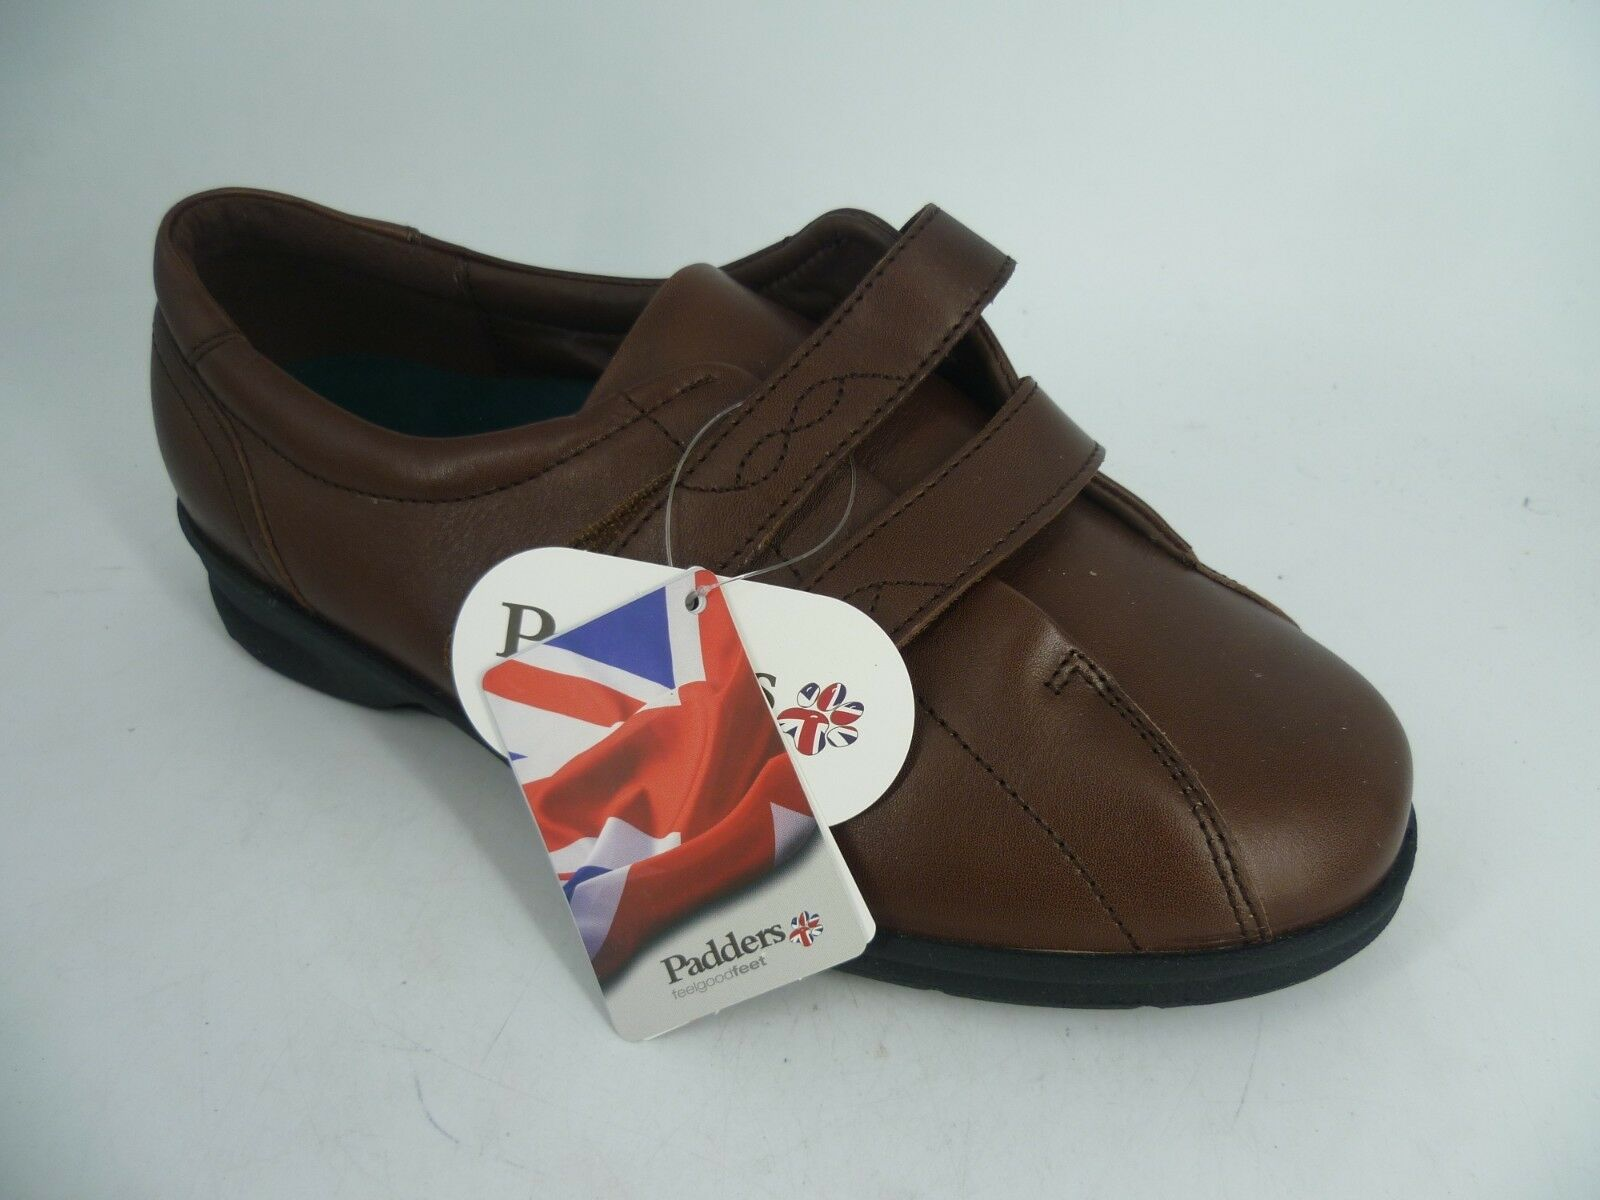 Padders Kerry marron marron marron Plat Tactile Fermeture Chaussure Dual Fit UK 8 EU 42 LN181 UU 07 a97dd6